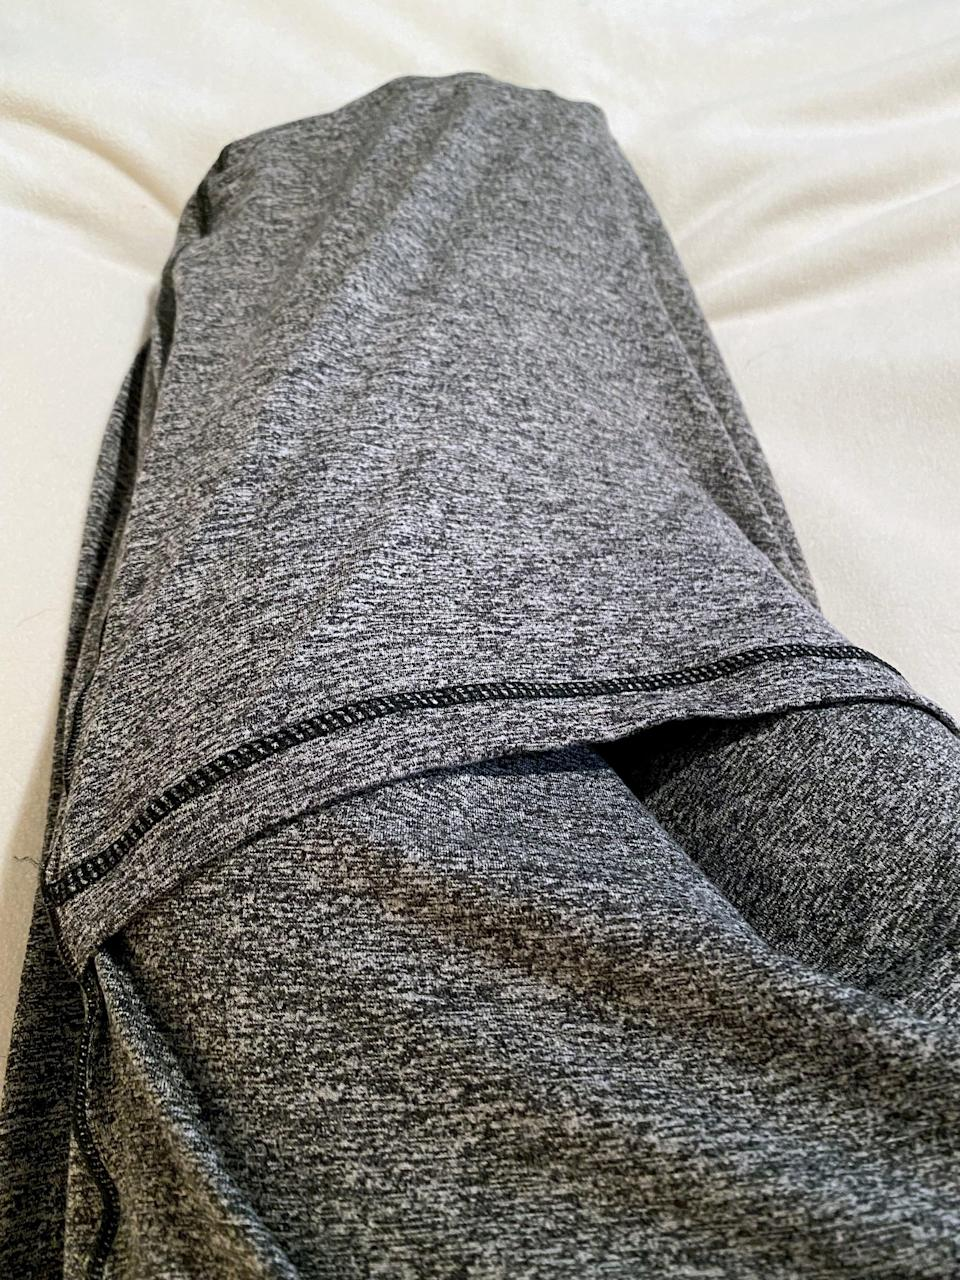 <p>The fabric of the Hug Sleep Pod Move is similar to super soft, stretchy, and lightweight workout pants. I love that it's machine-washable. It feels like the most comfortable pair of leggings, but it's more like one big leg for your entire body.</p>